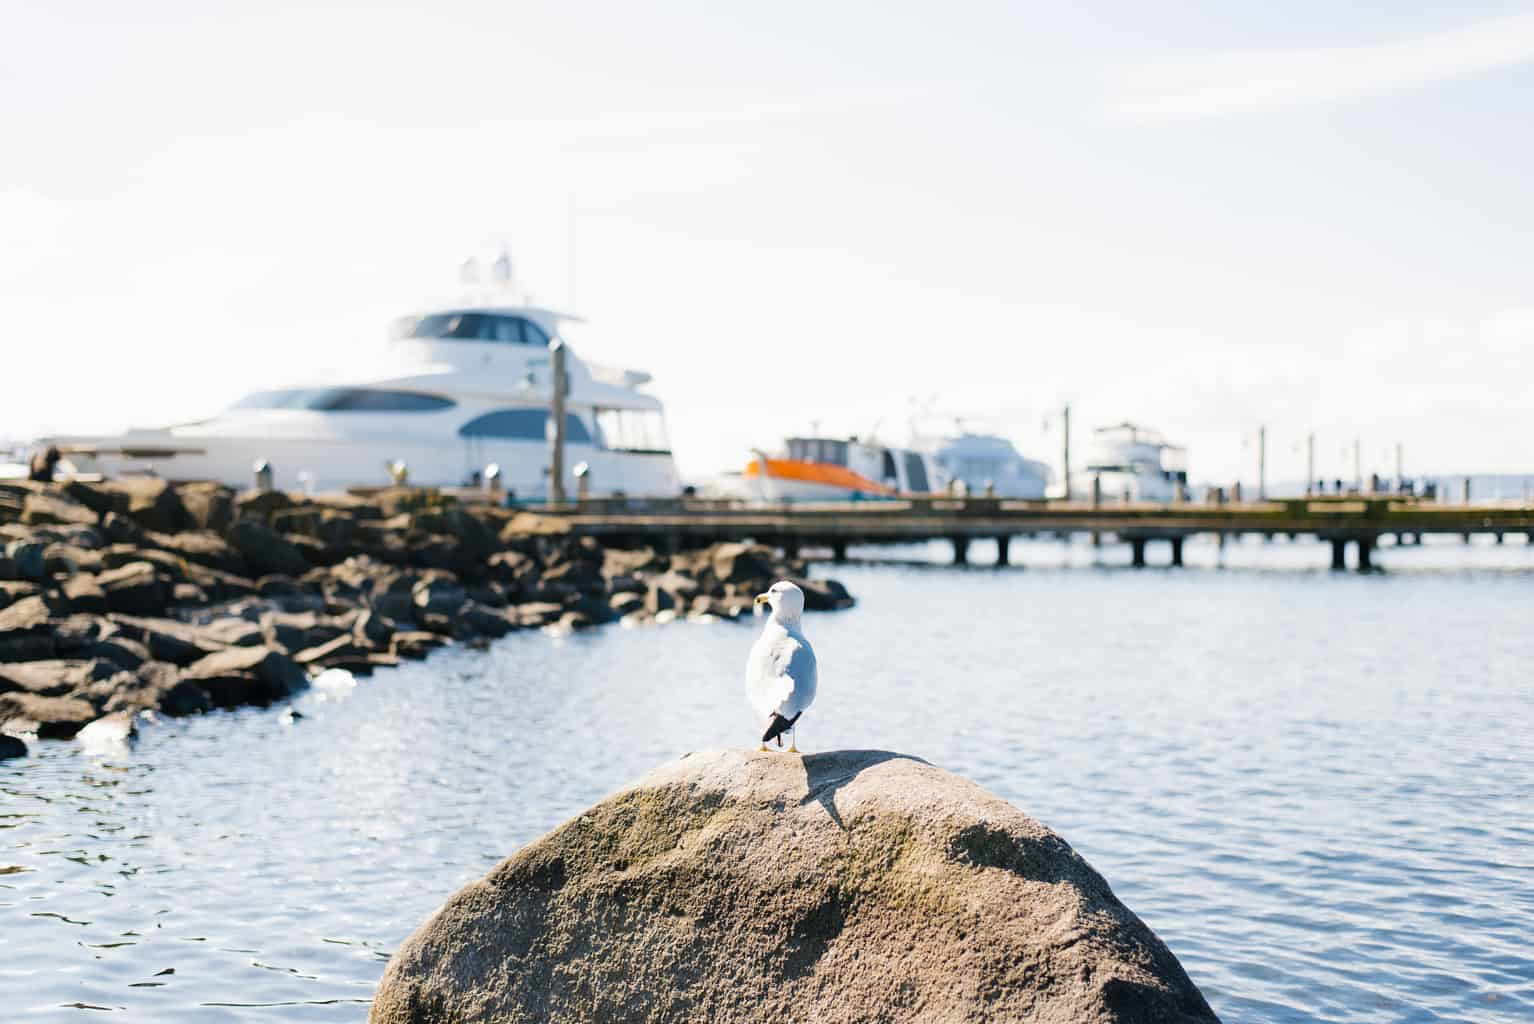 seagull on a rock in front of large boats on lake washington